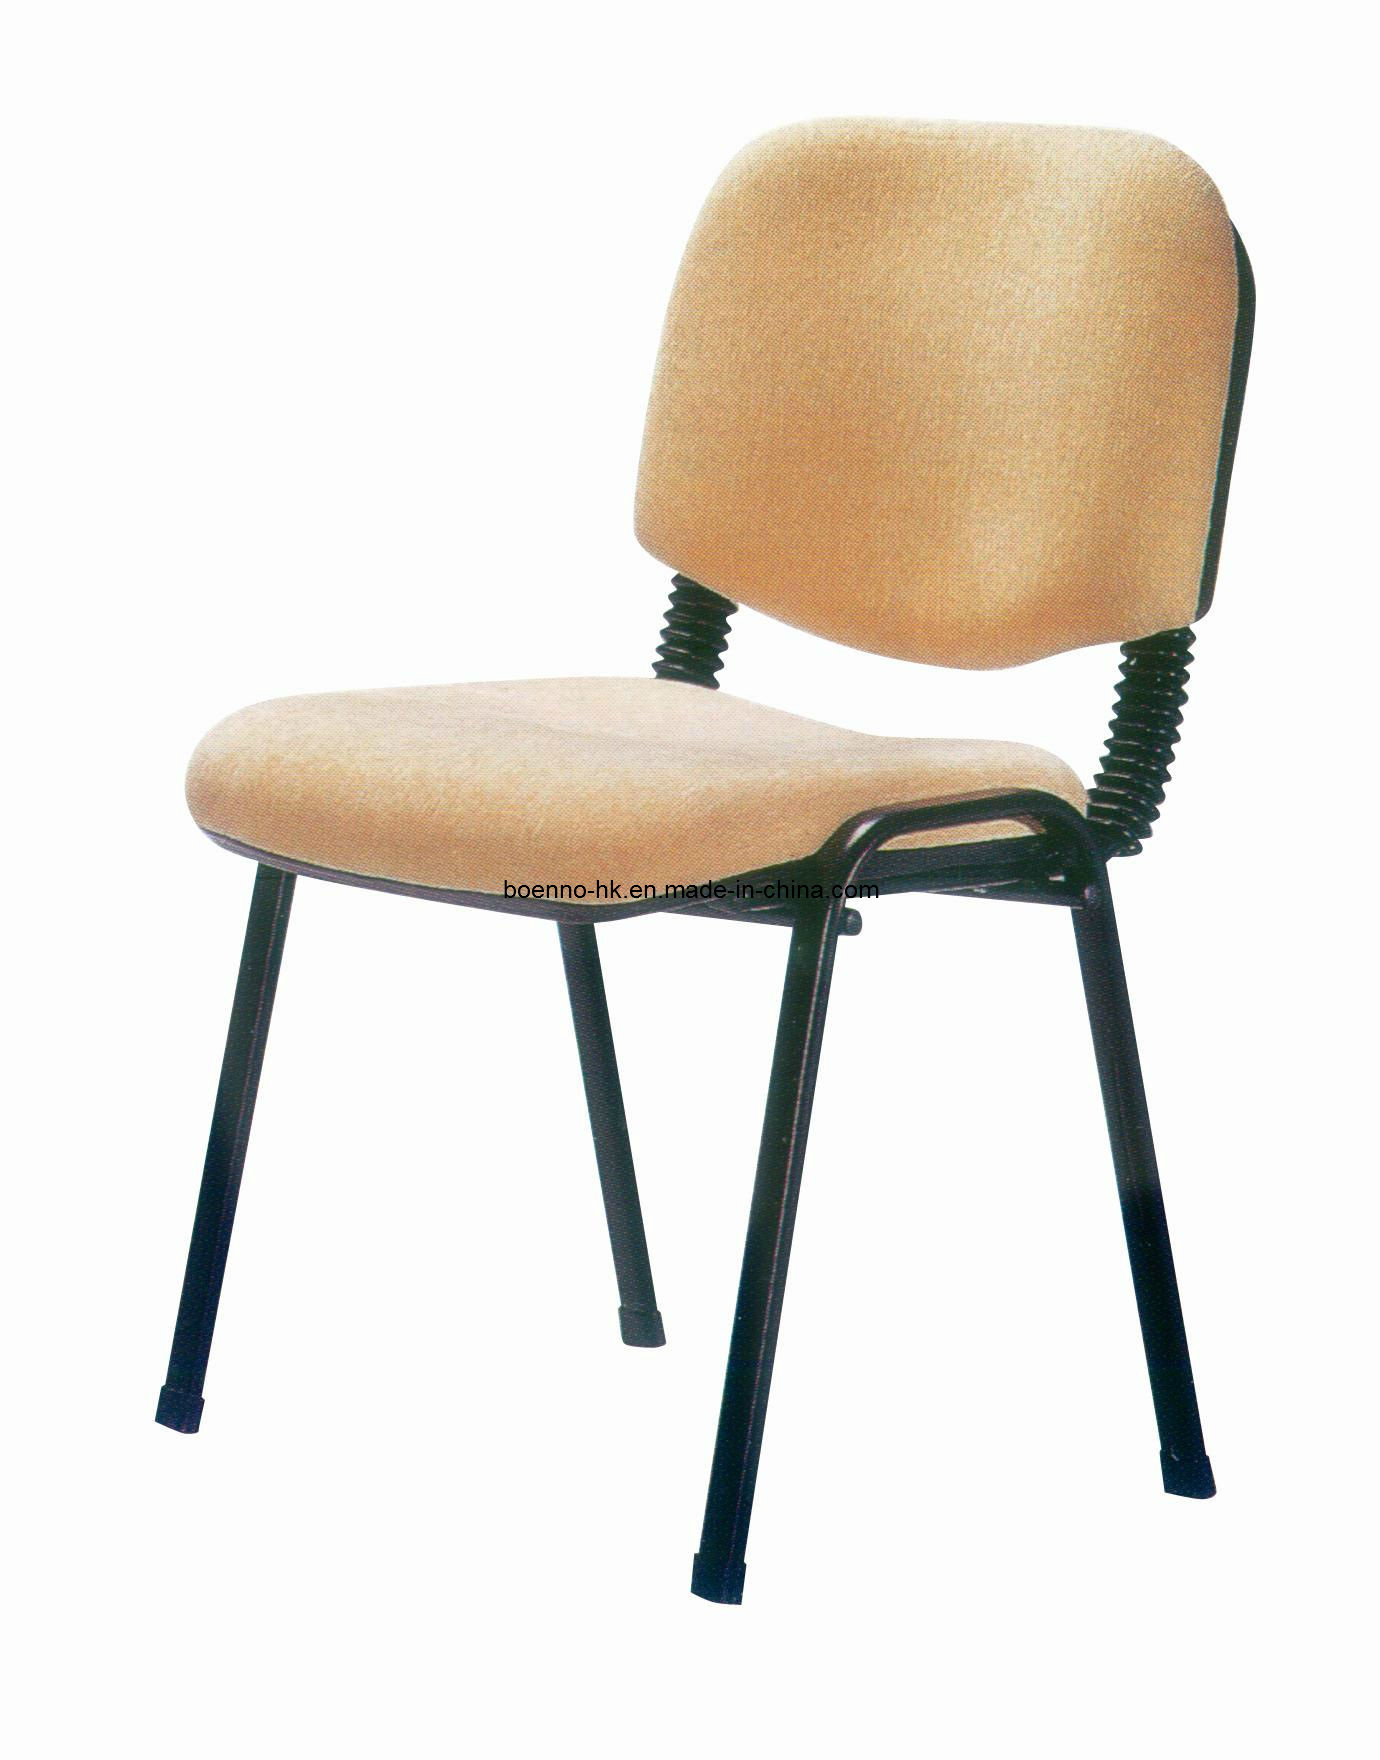 Student Chair, School Chair (TC-09B)